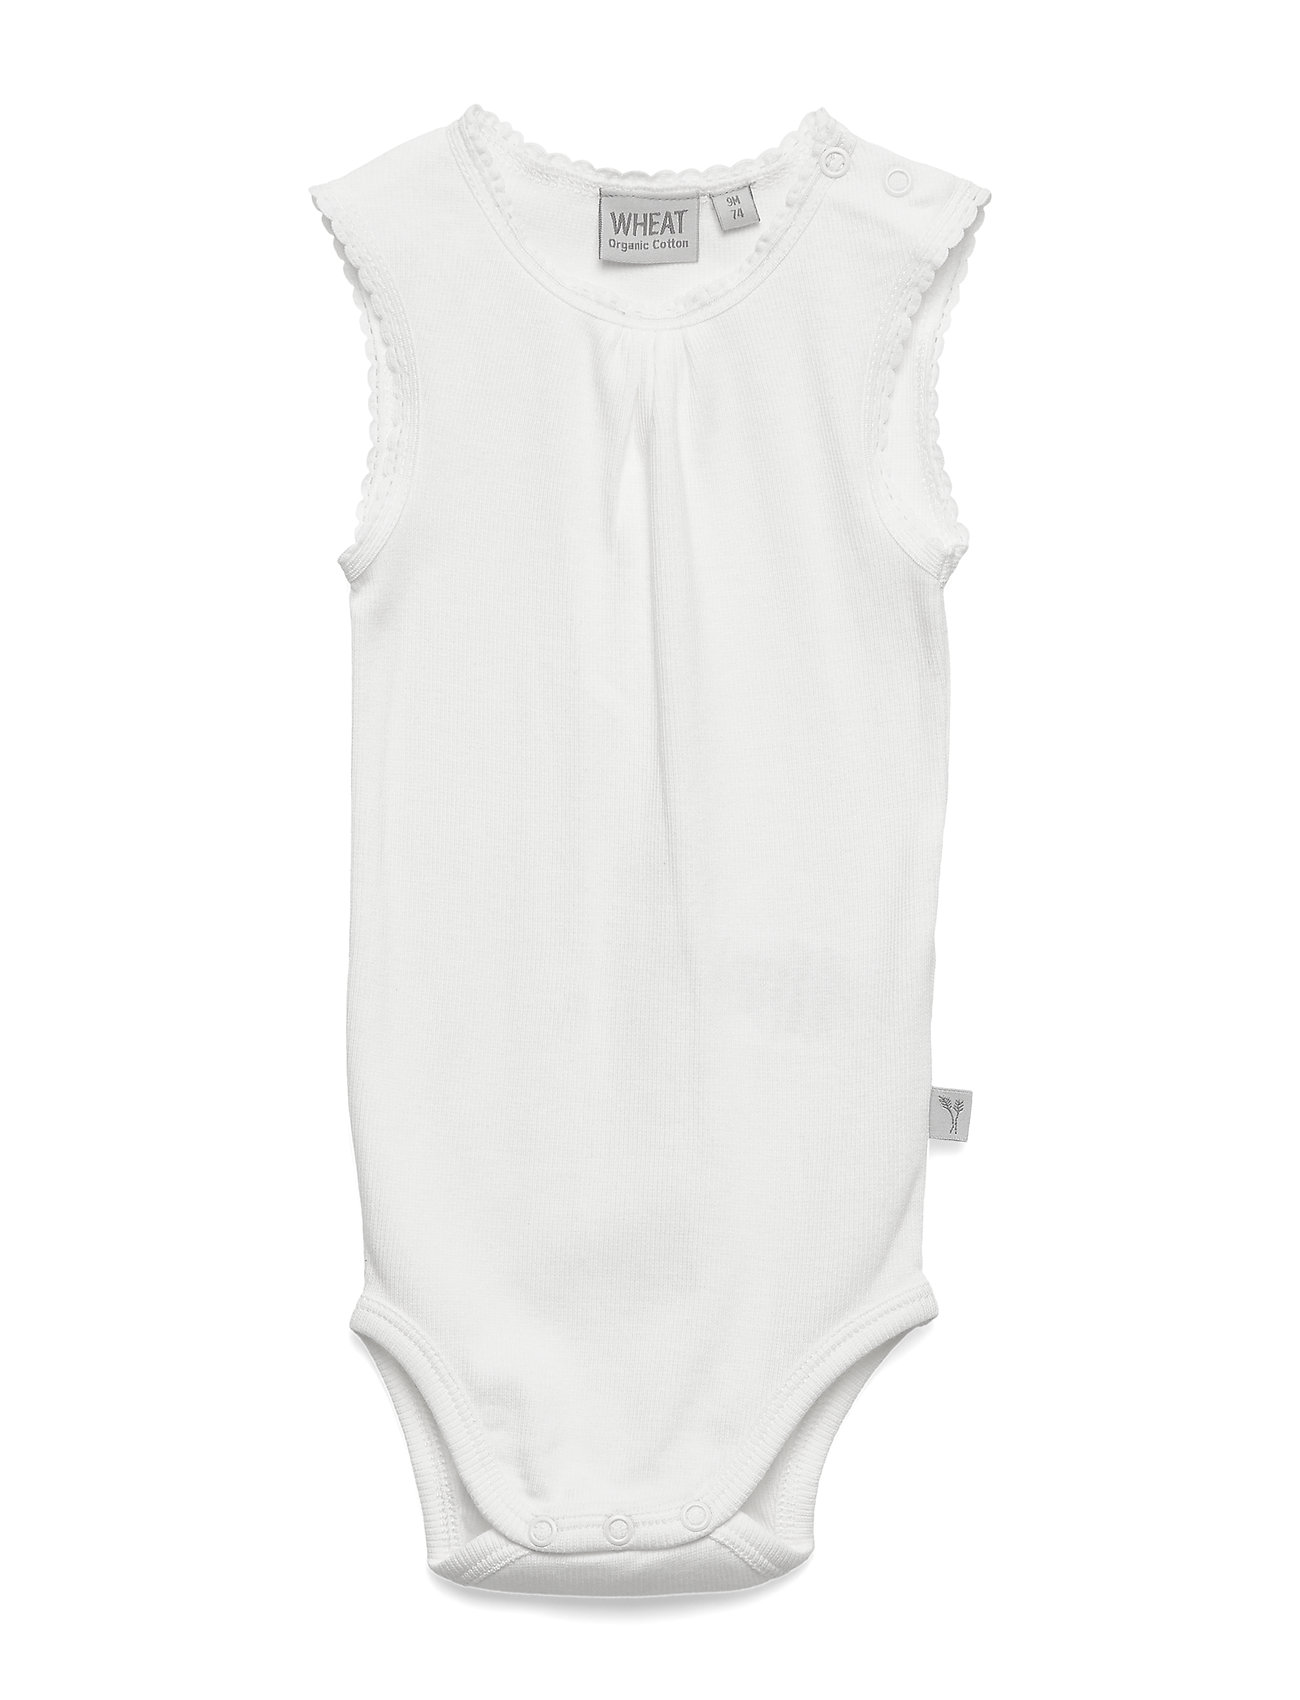 Image of Rib Body Sleeveless Bodies Short-sleeved Hvid Wheat (3350775169)